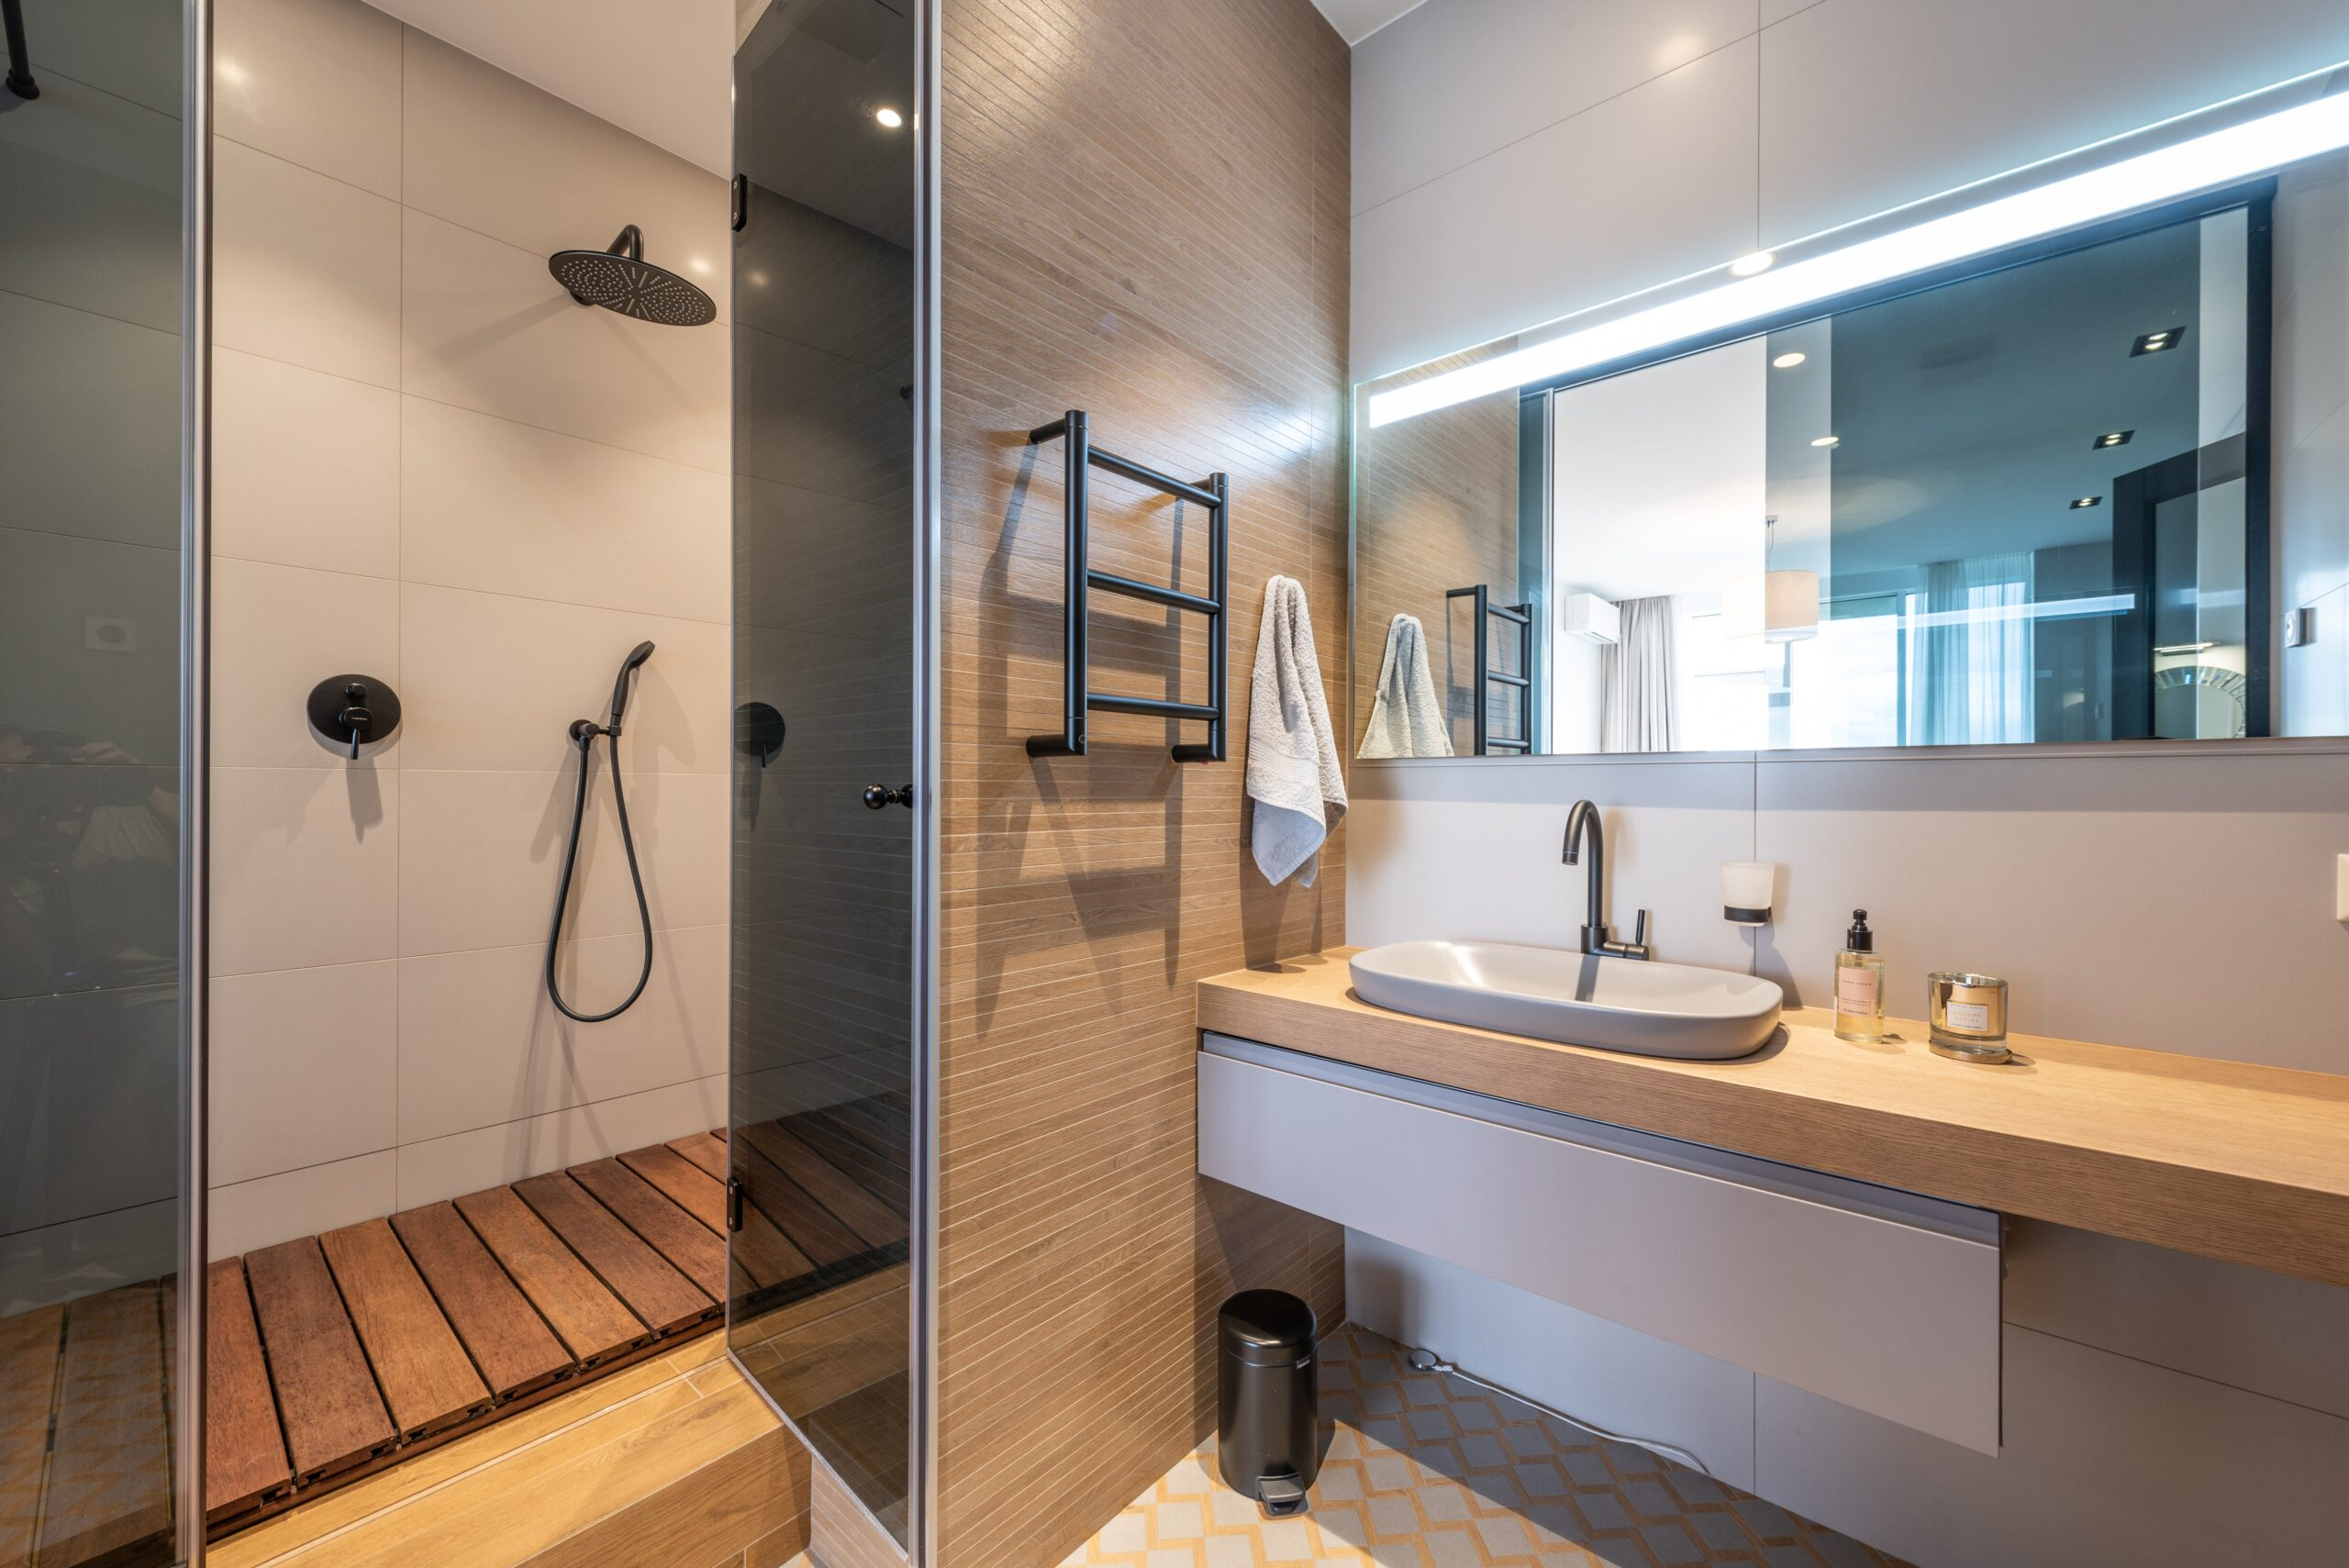 Vanity bathroom with shower and mirror